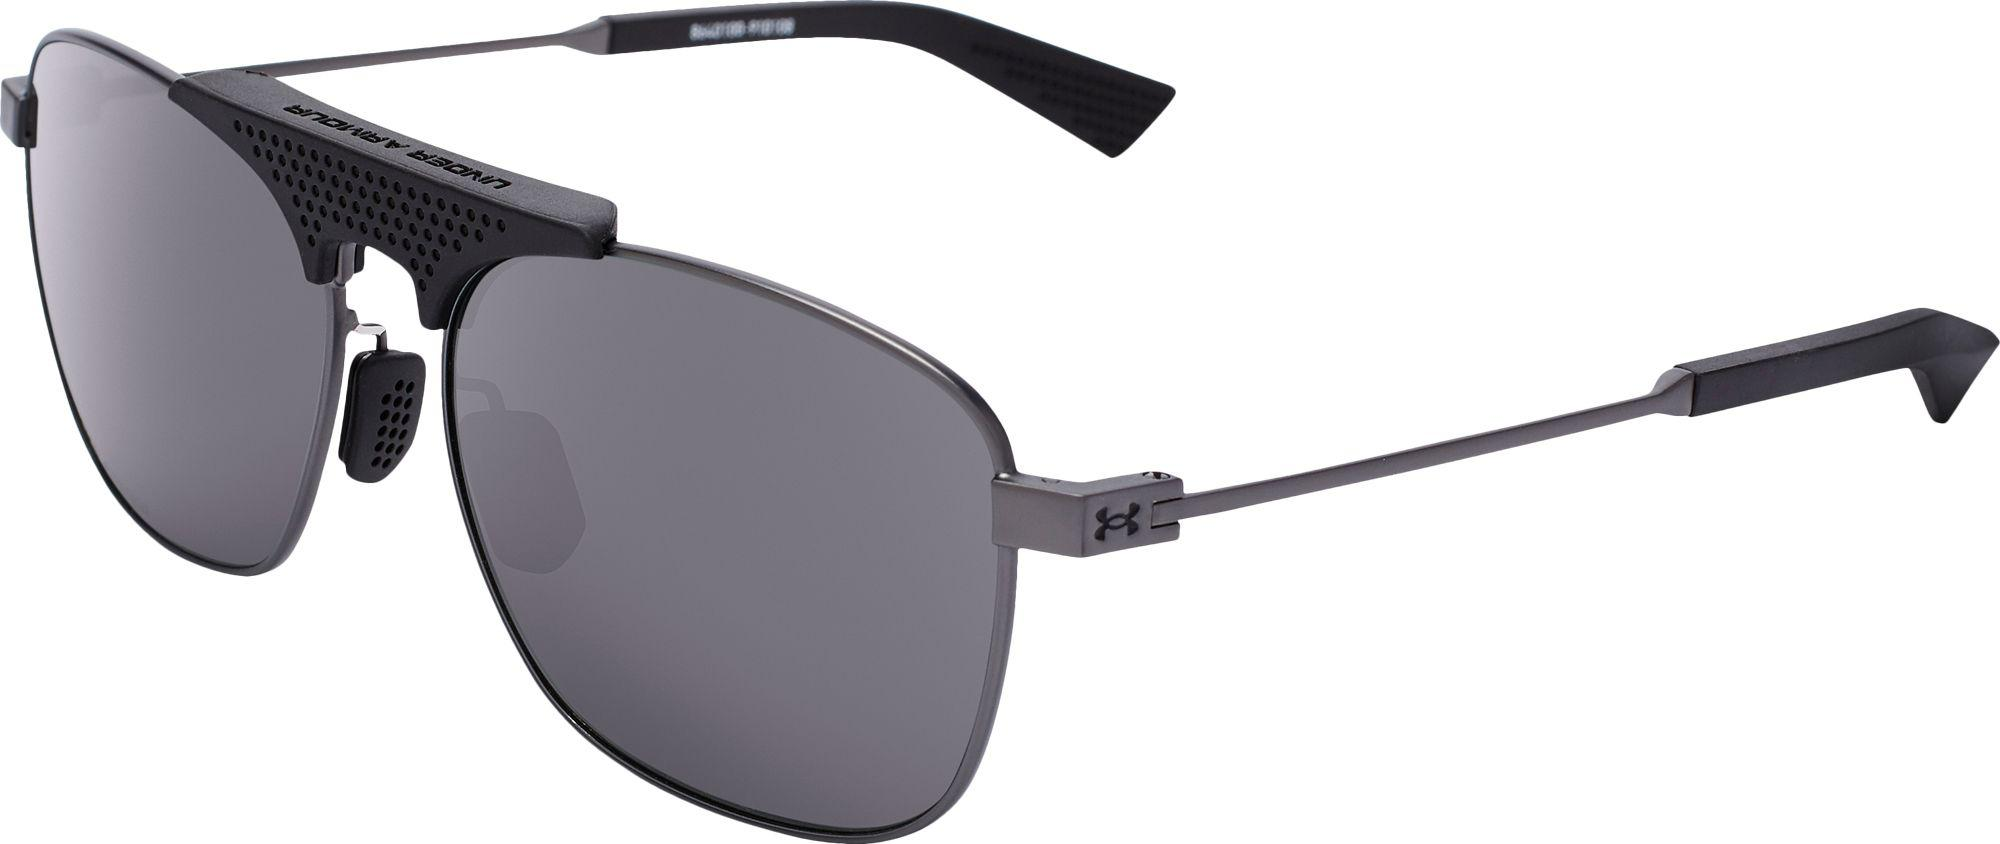 3021bf1b73 Lyst - Under Armour Rally Storm Polarized Sunglasses in Gray for Men